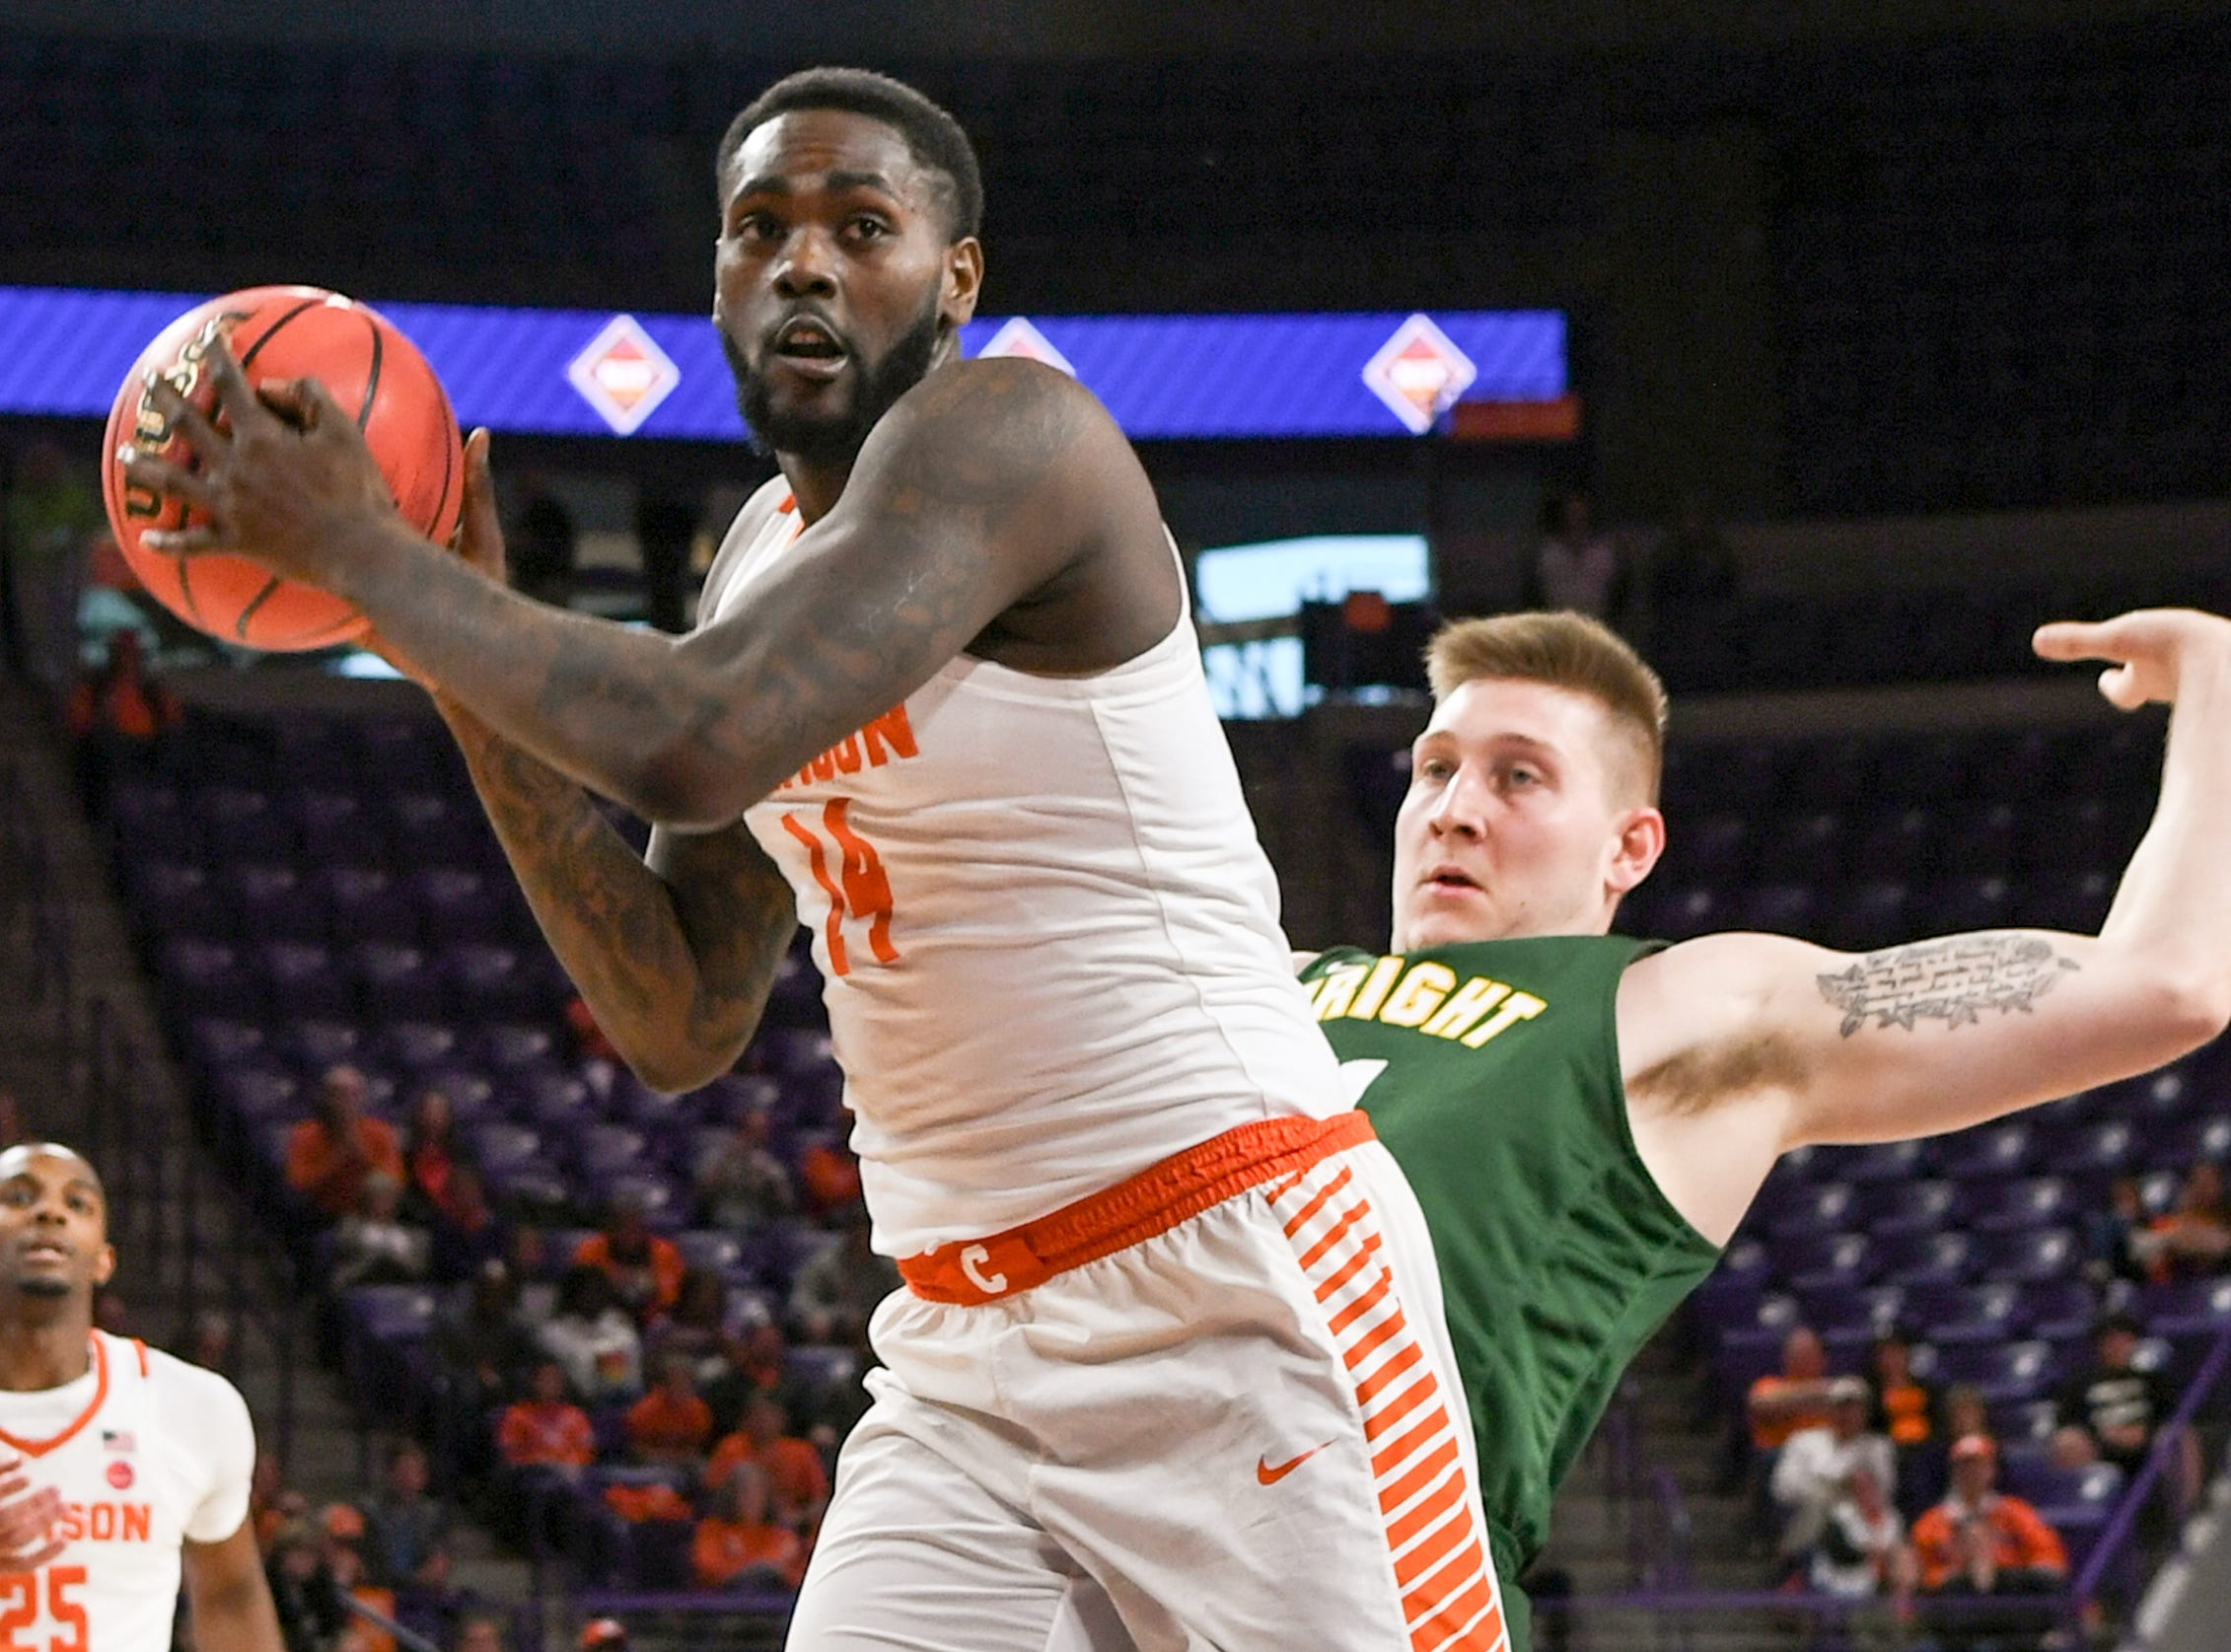 Clemson forward Elijah Thomas (14) rebounds near Wright State center Loudon Love(11) during the first half of the NIT at Littlejohn Coliseum in Clemson Tuesday, March 19, 2019.